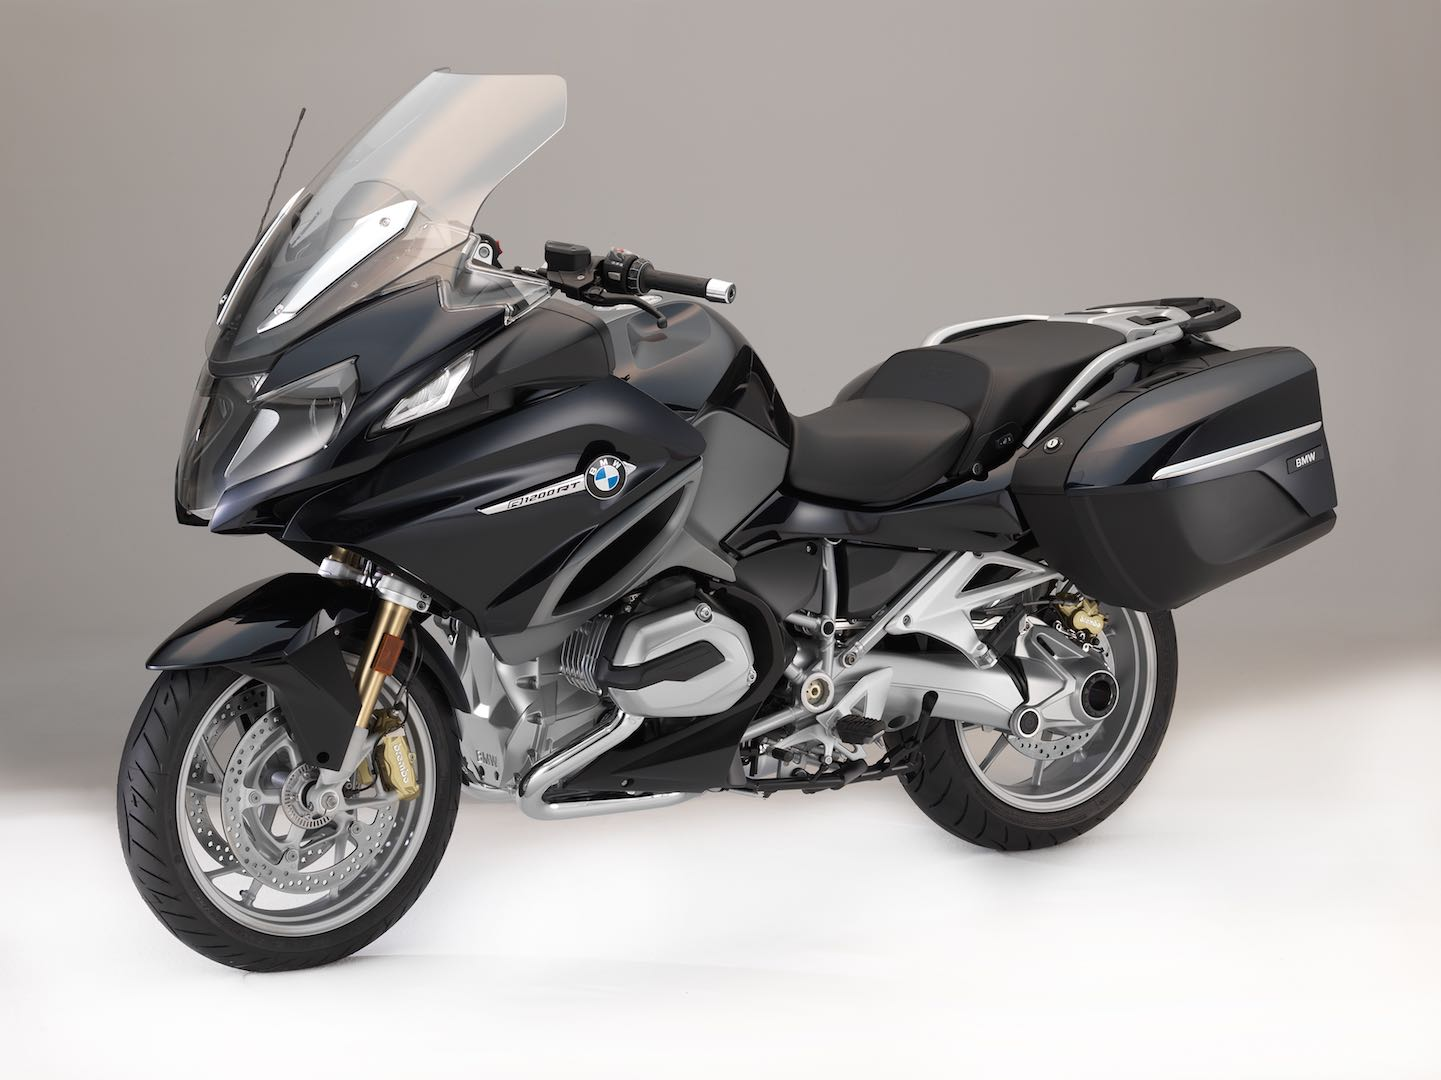 2018 bmw r 1200 rt buyer 39 s guide specs price. Black Bedroom Furniture Sets. Home Design Ideas